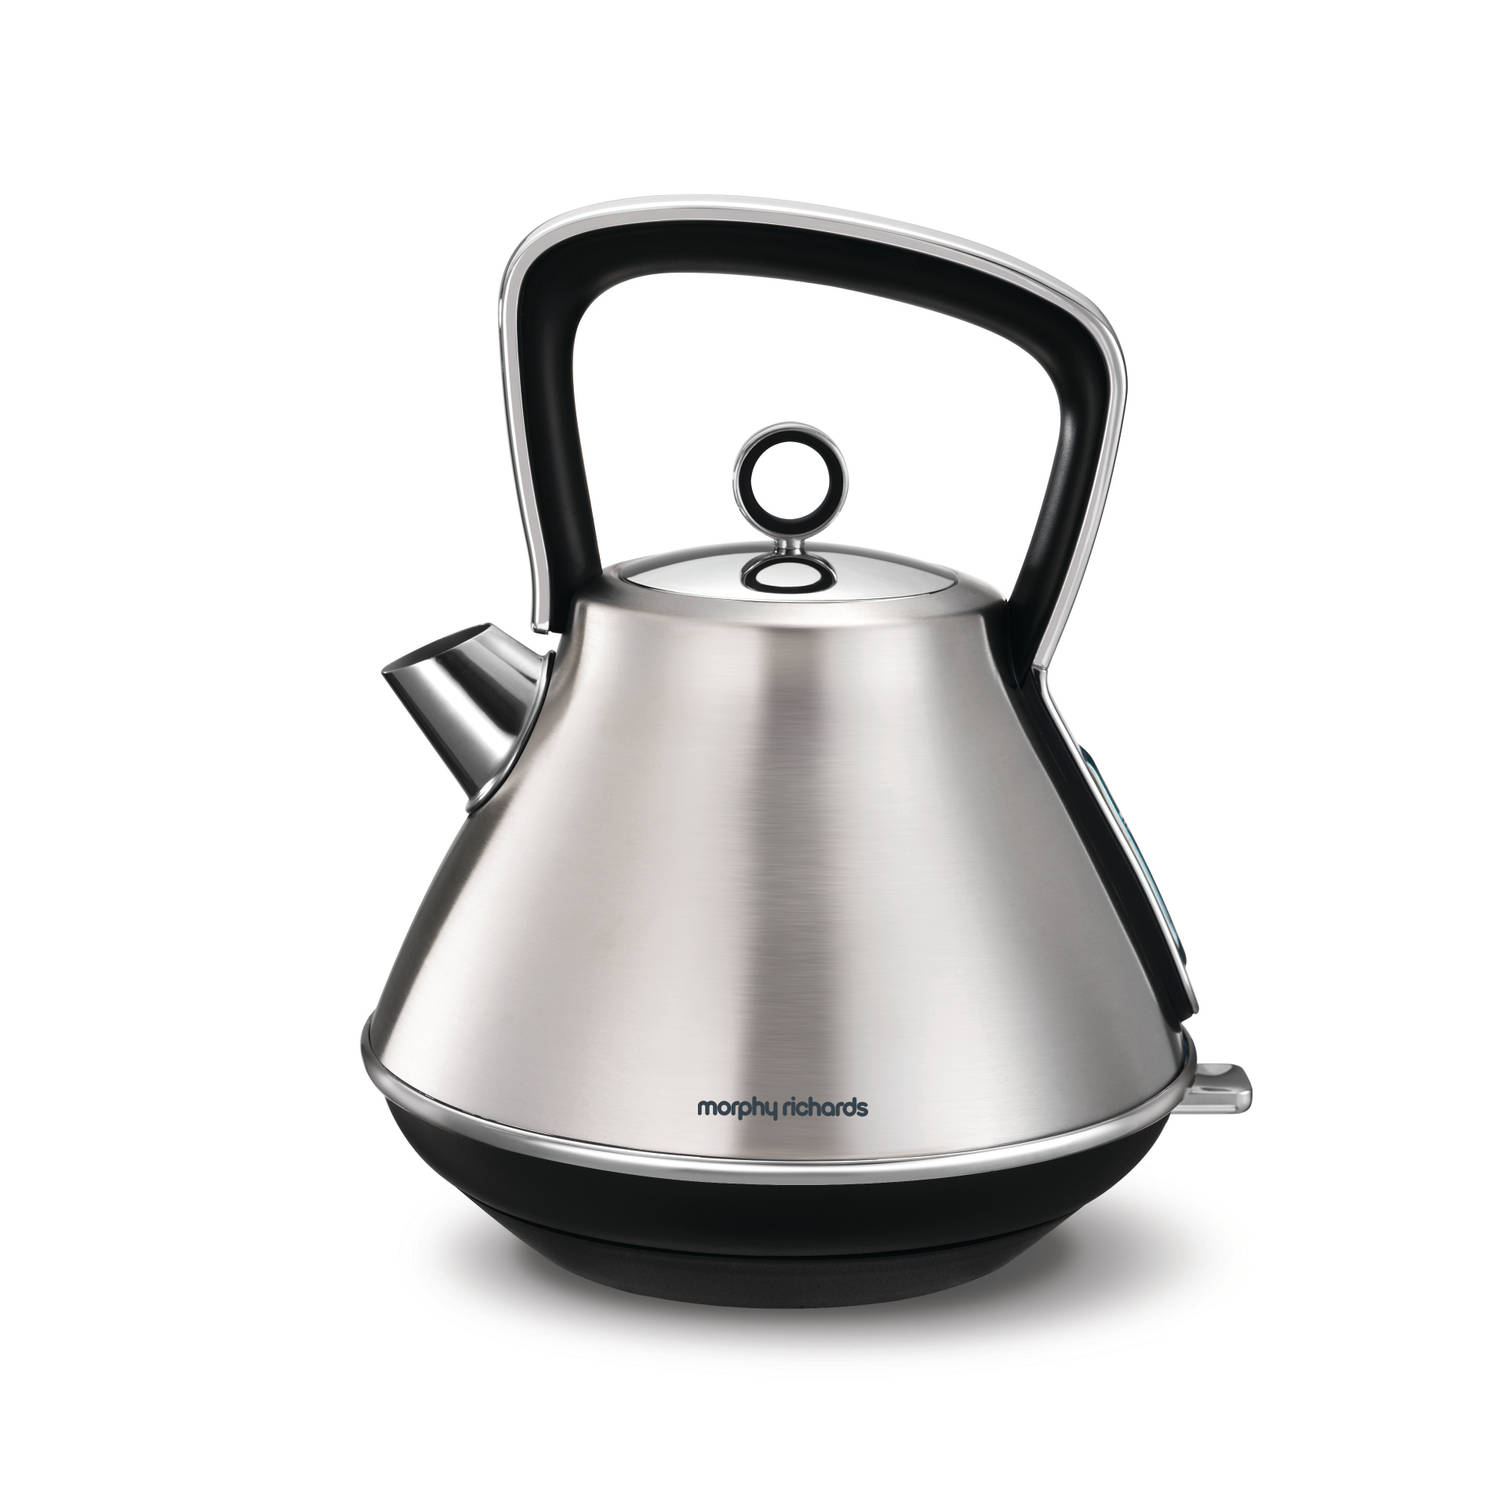 Morphy Richards waterkoker Evoke Special Edition (piramide-vorm) - RVS